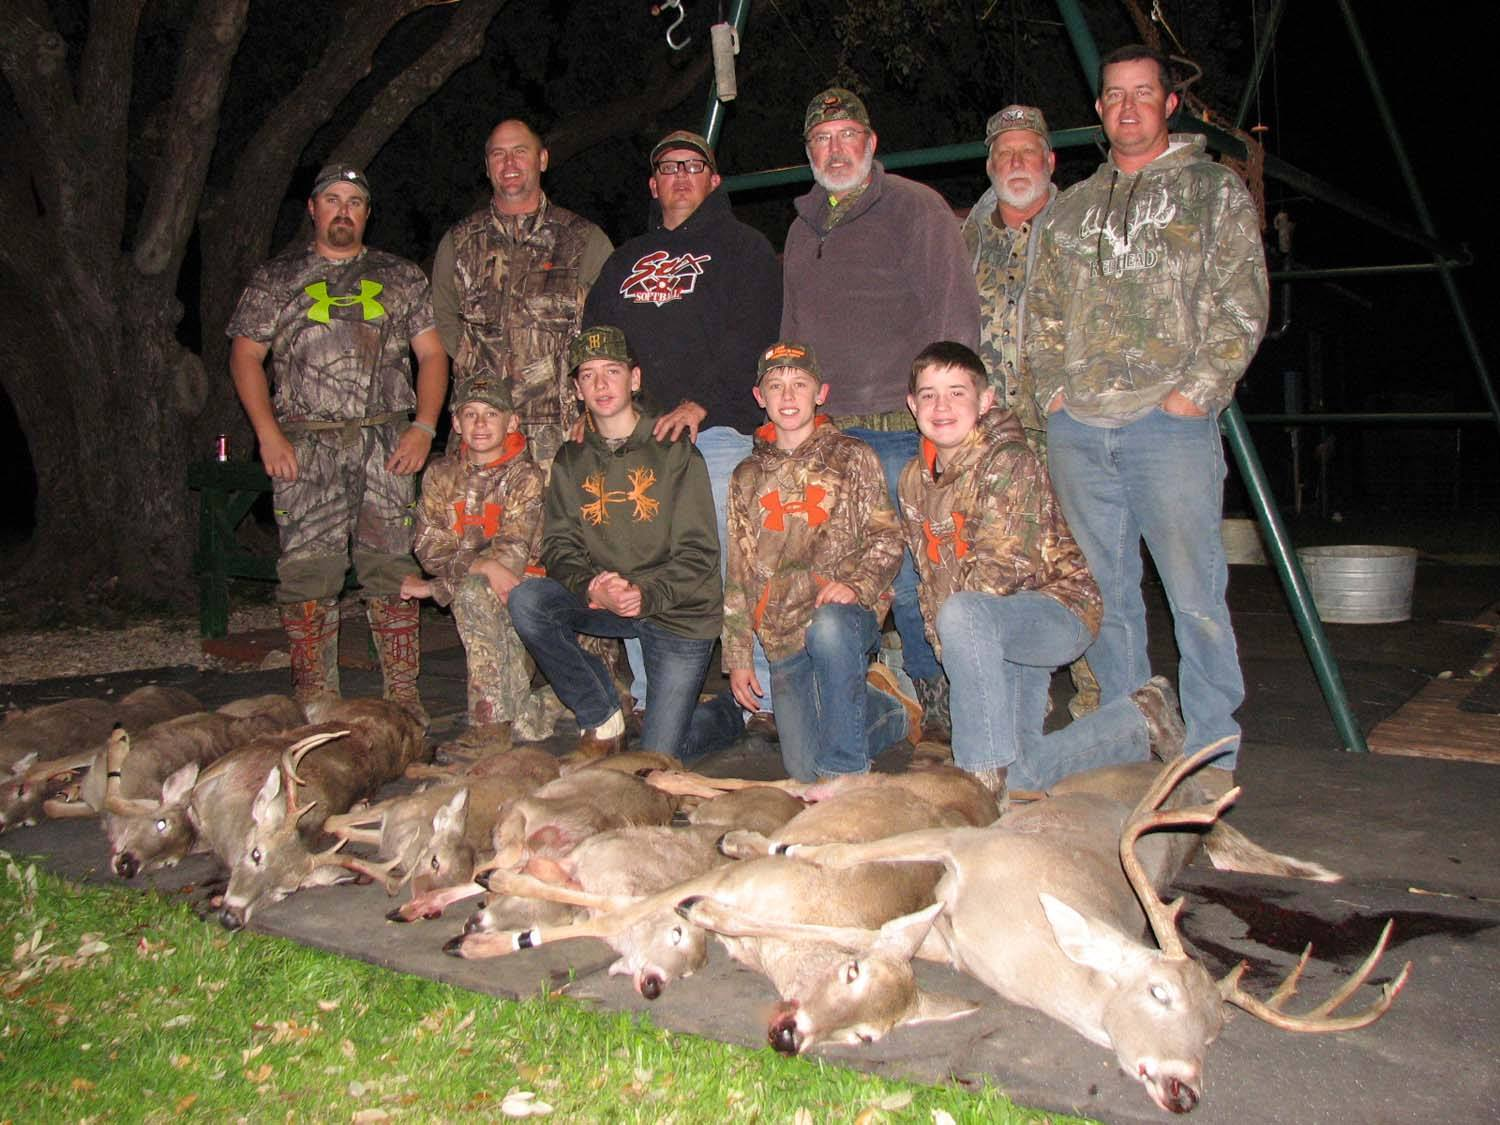 Father/son hunt from Hobbs, NM